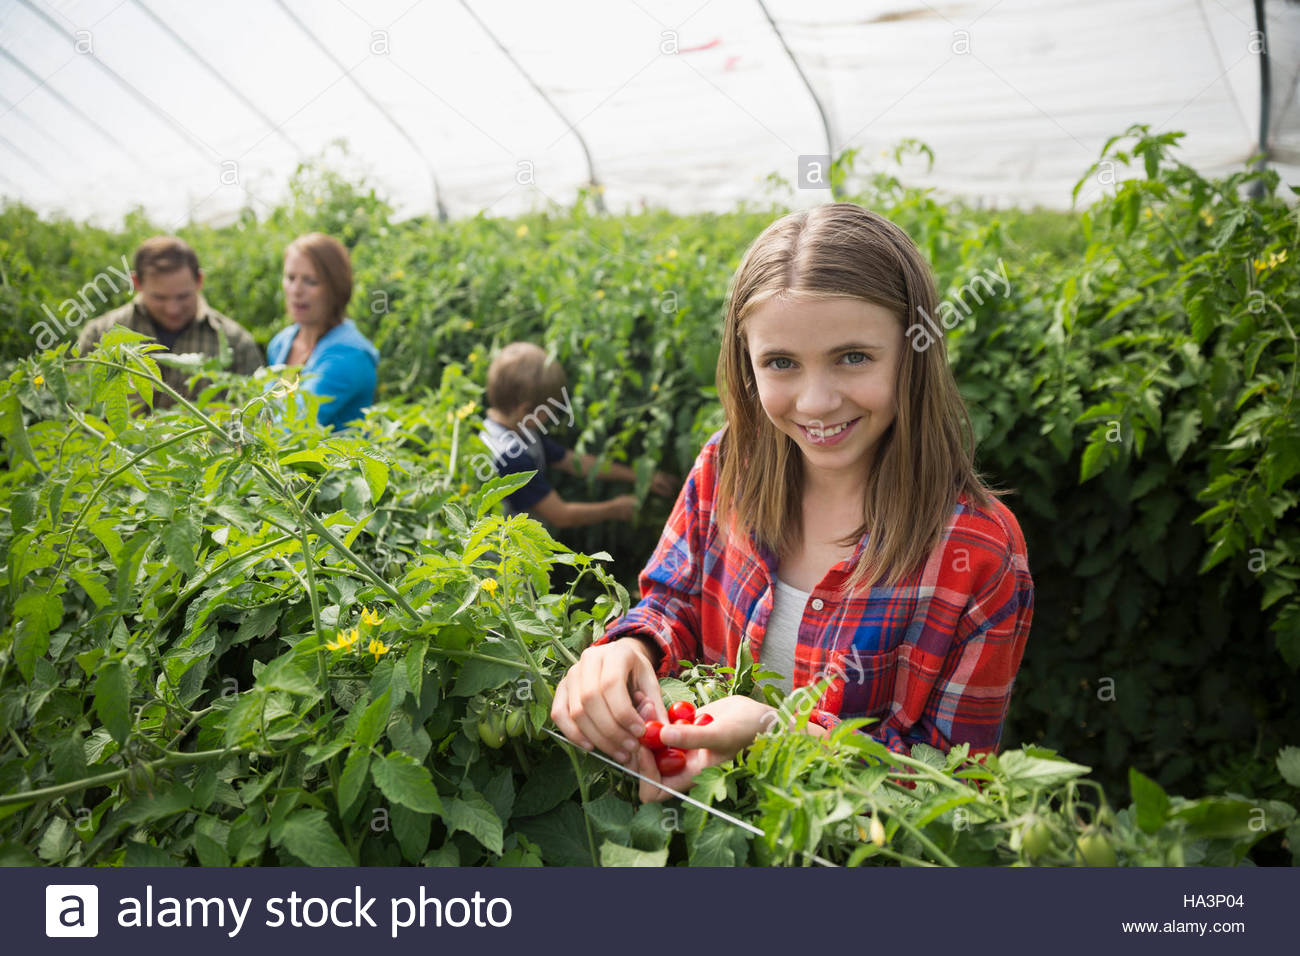 Portrait smiling girl picking tomatoes in greenhouse - Stock Image